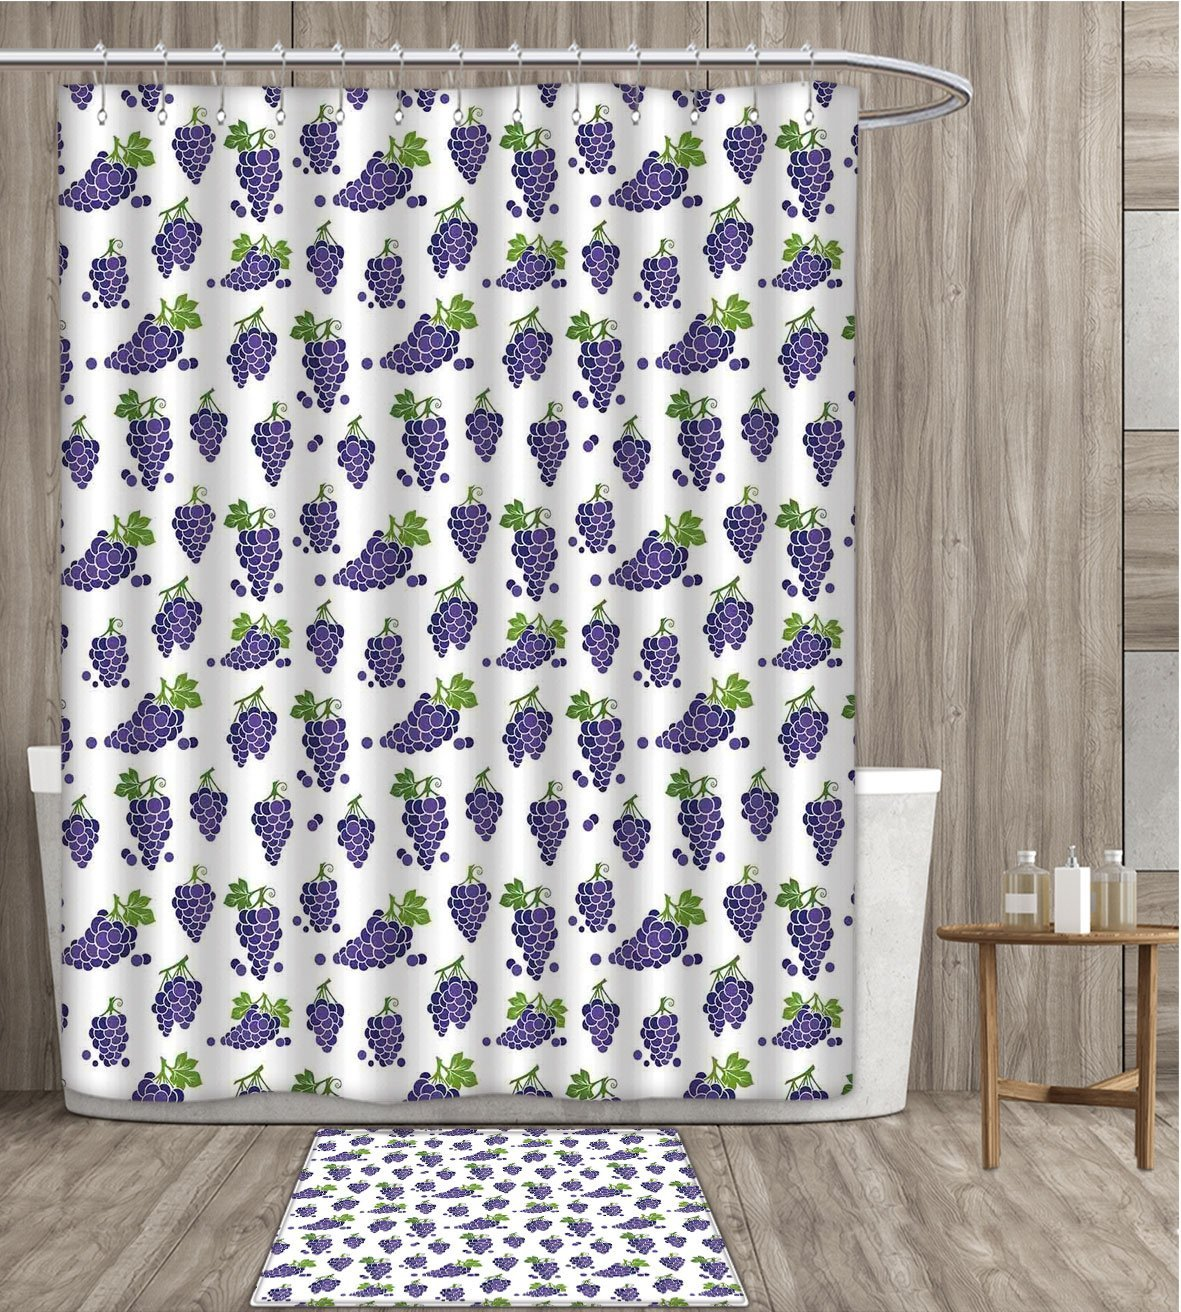 Us 17 01 26 Off Vineyard Shower Curtain Customize Cute Fruit Patterned Juicy Organic Yummy Sweet Food Cottage Life Design Fabric Bathroom Set In